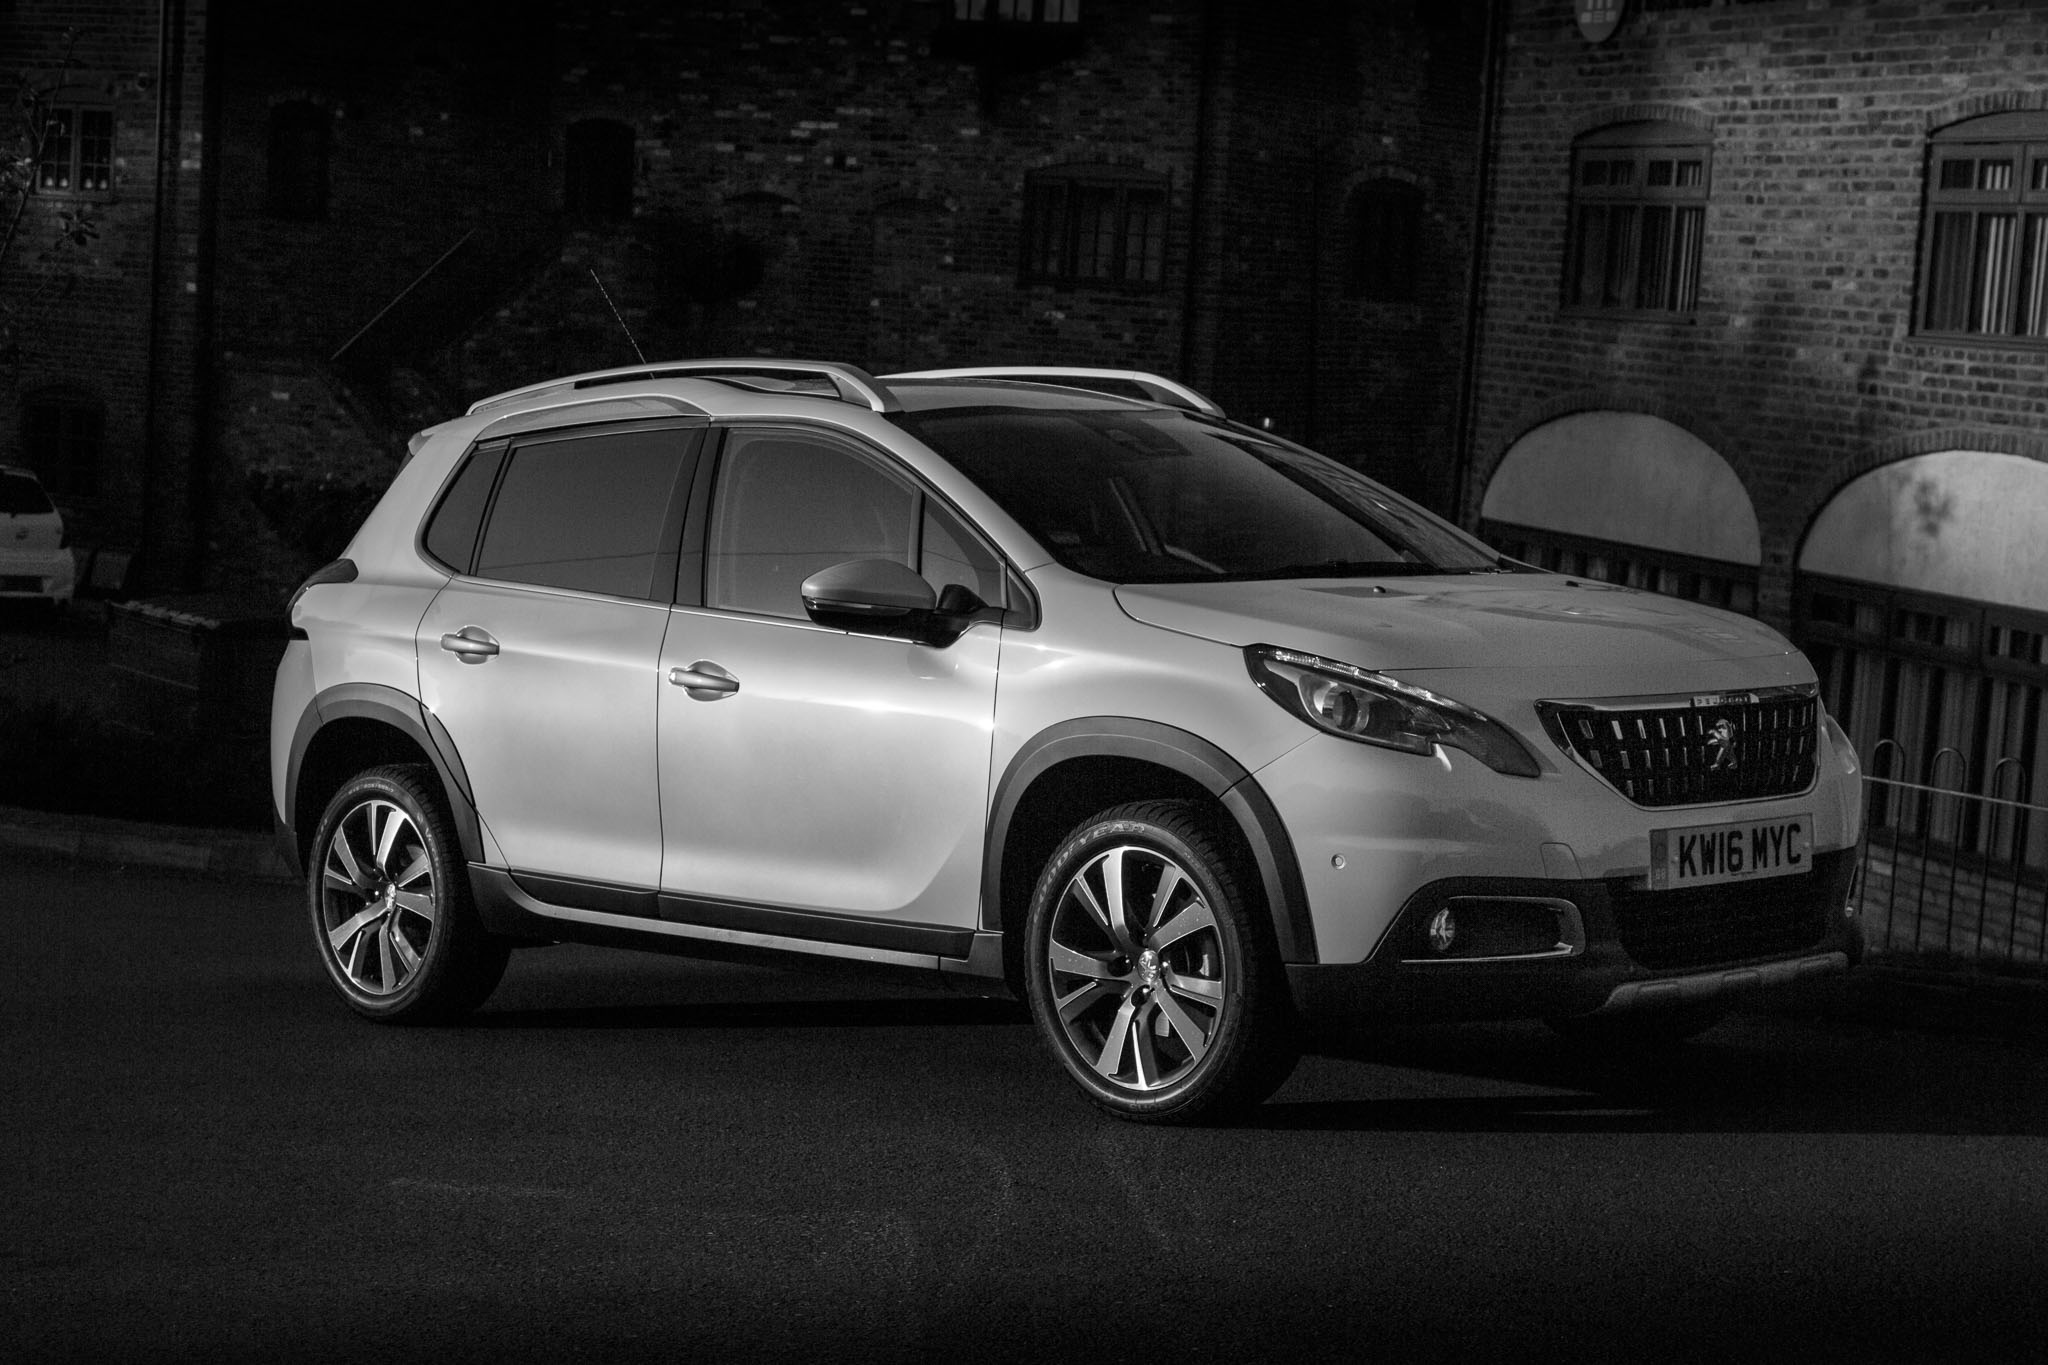 Advertise On My Car >> 2016 Peugeot 2008 Allure PureTech 130 Gallery